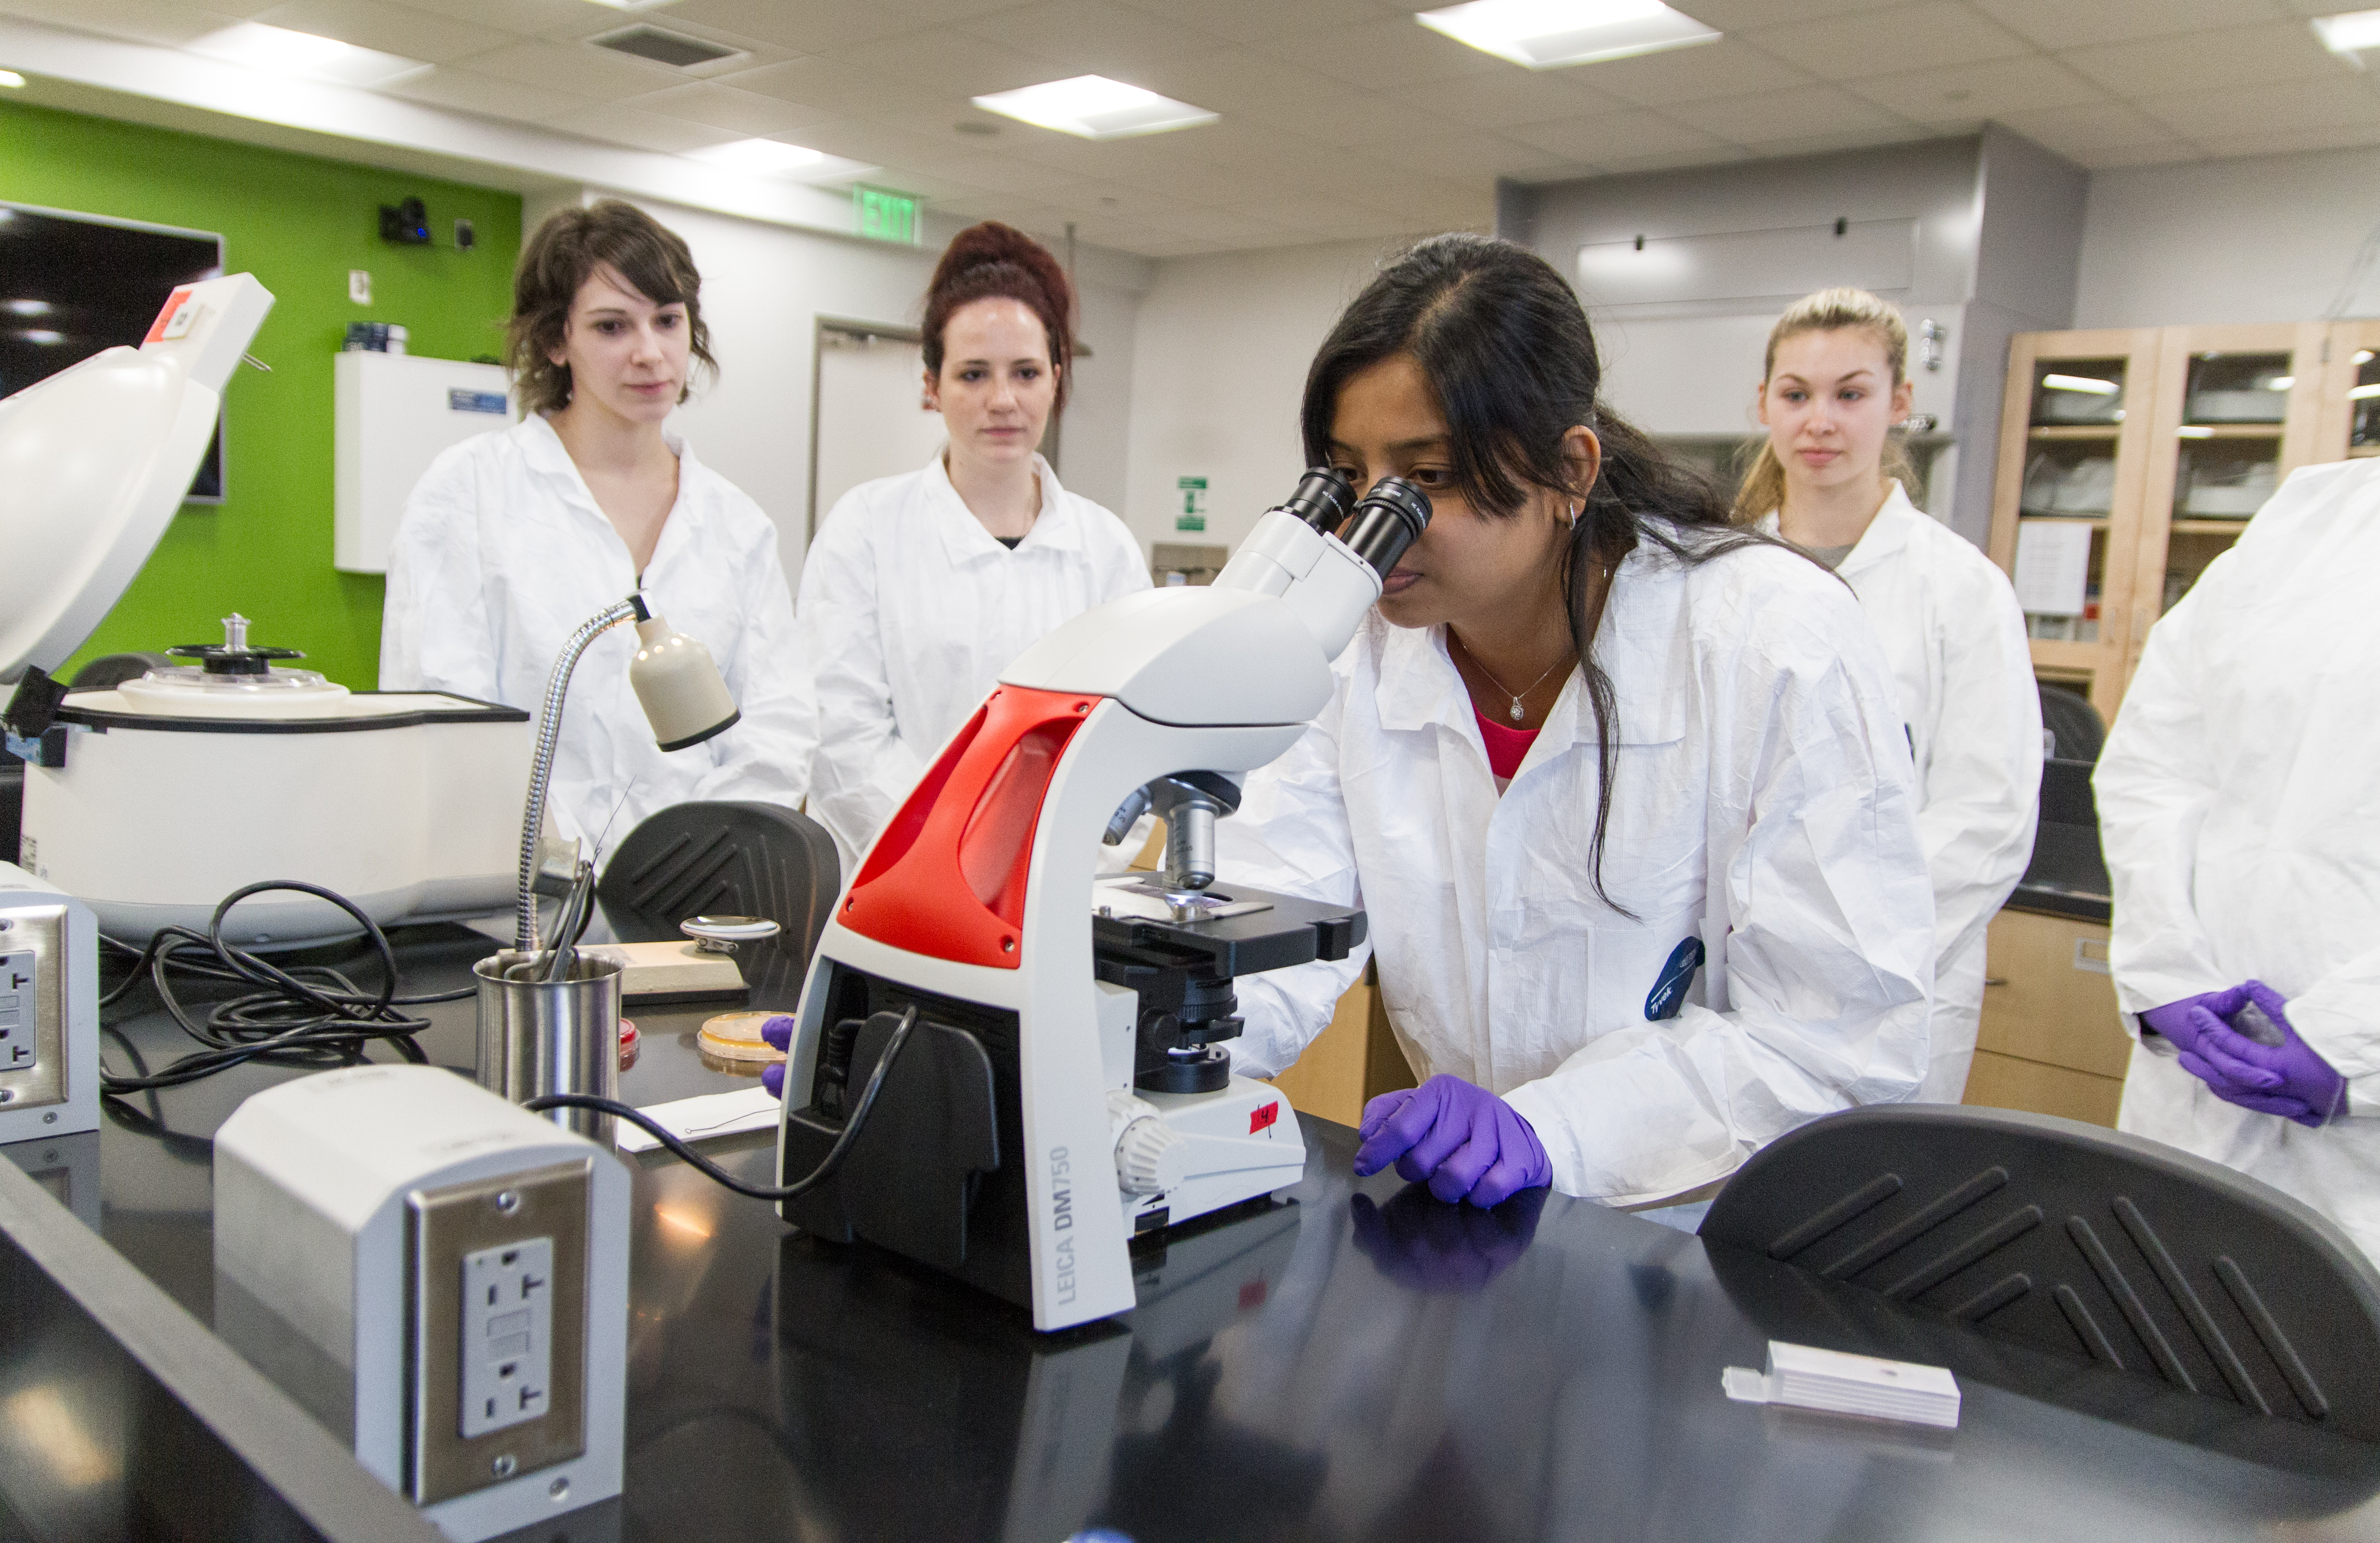 Student in a lab examining a specimen under a microscope surrounded by several students